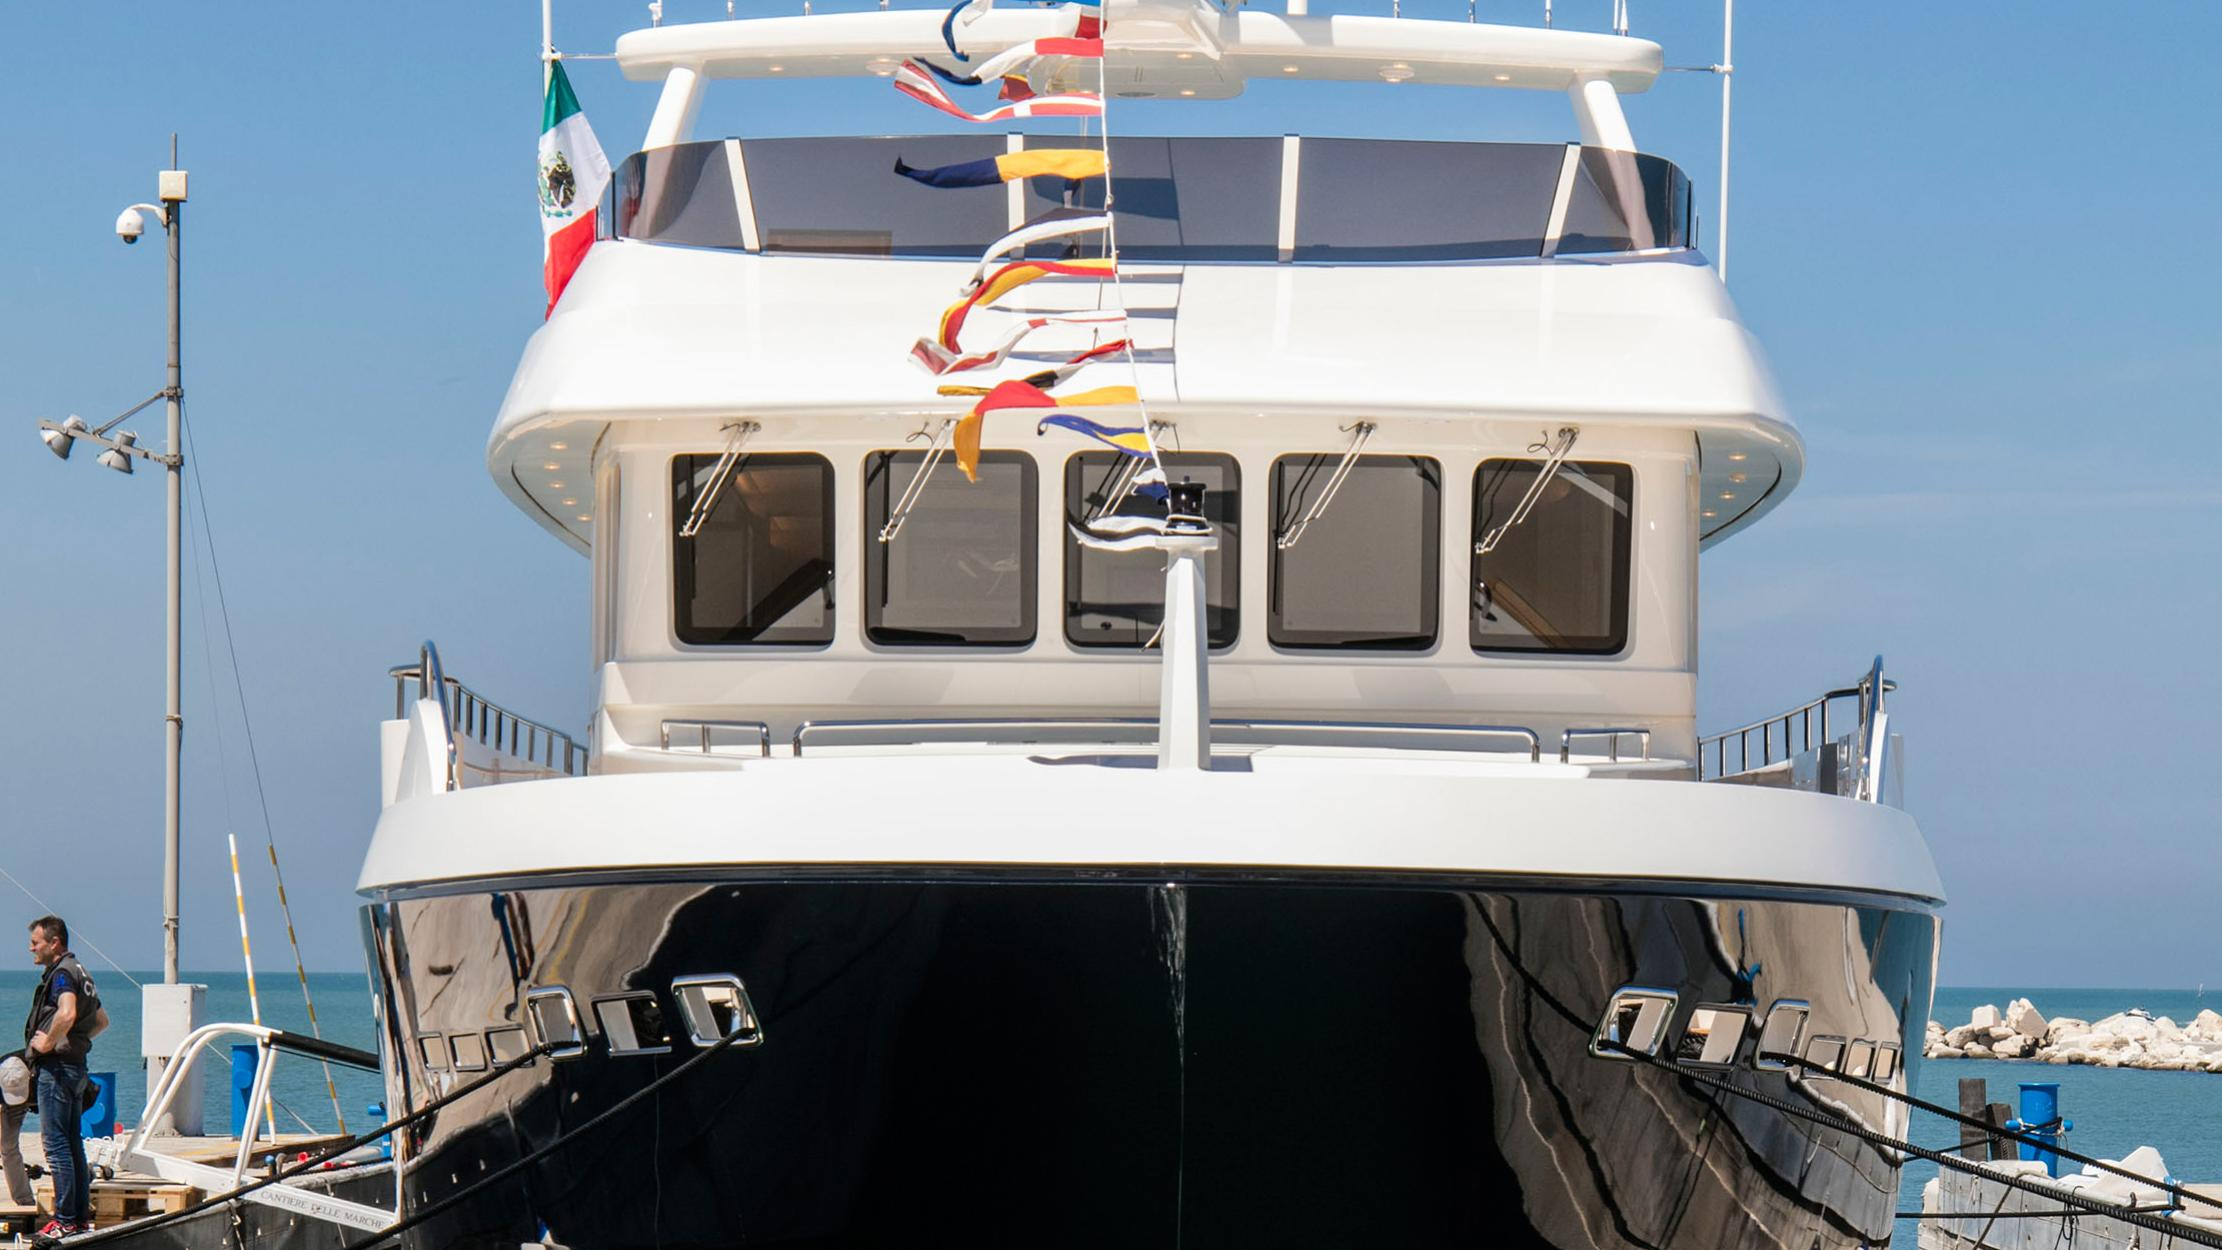 babbo-motor-yacht-cantiere-delle-marche-darwin-102-2016-31m-bow-moored